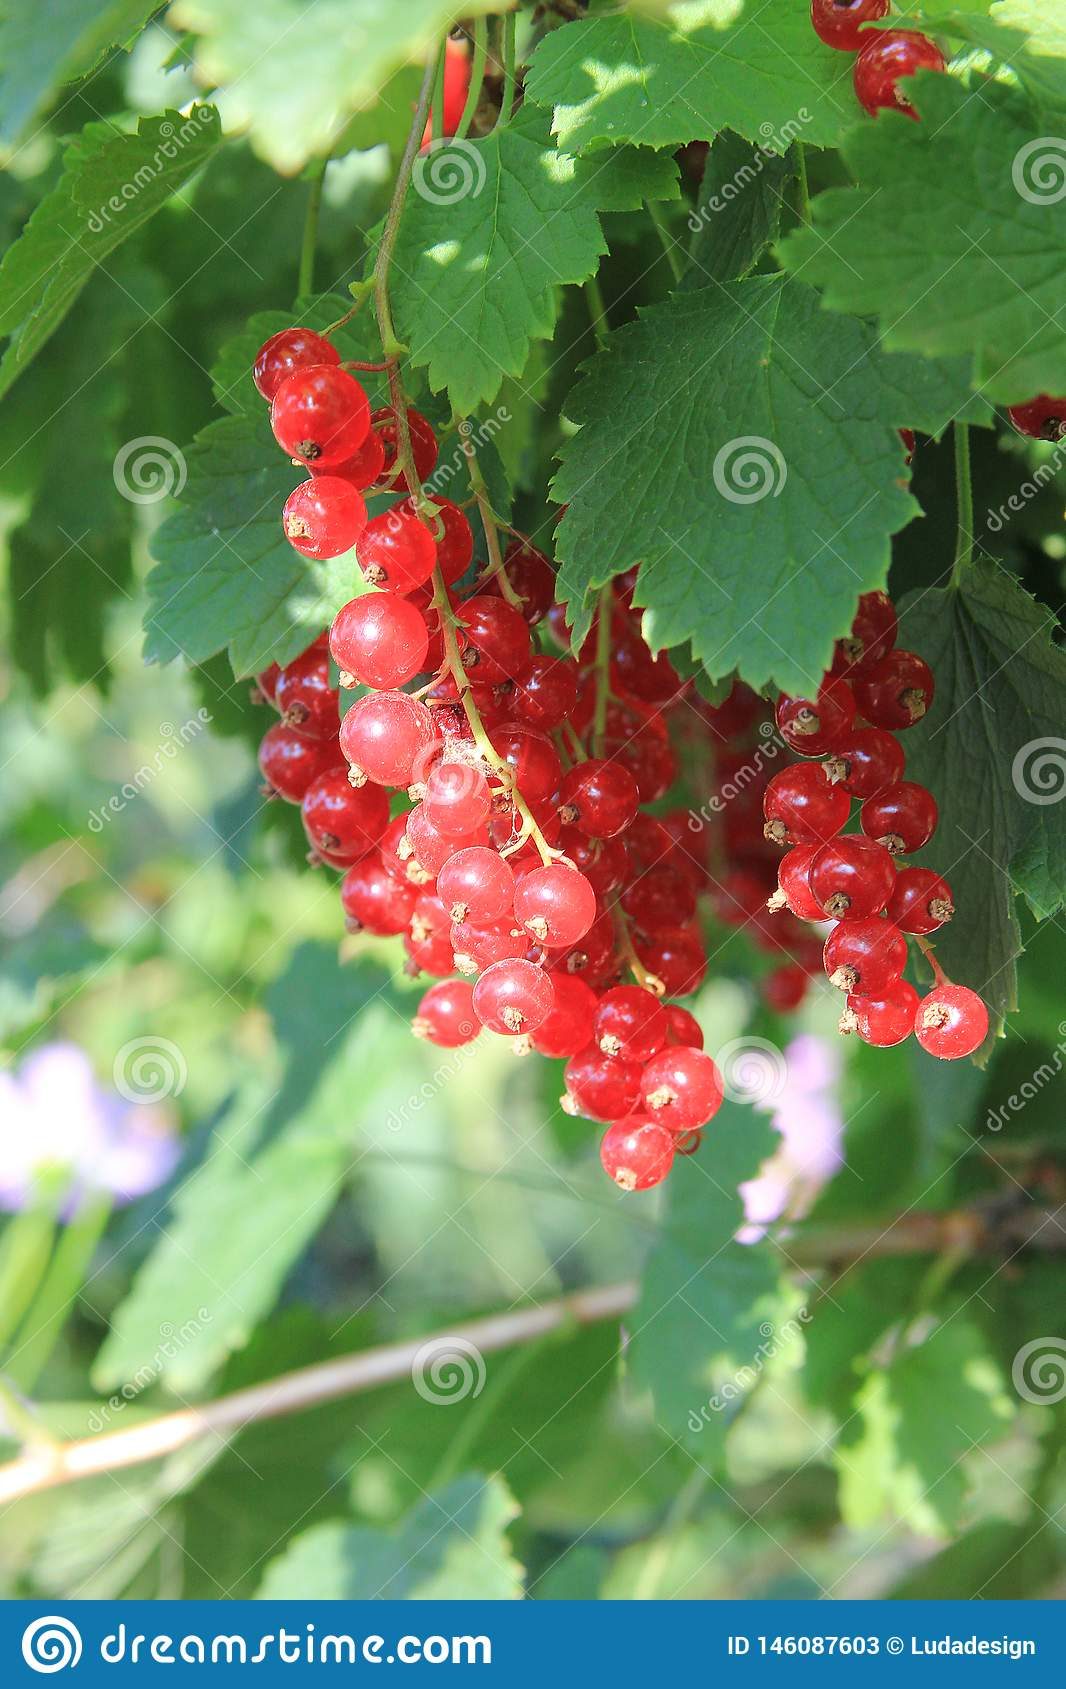 A red ripe currant on the green leaves background at the sunny day. Berries on the bush in the summer garden